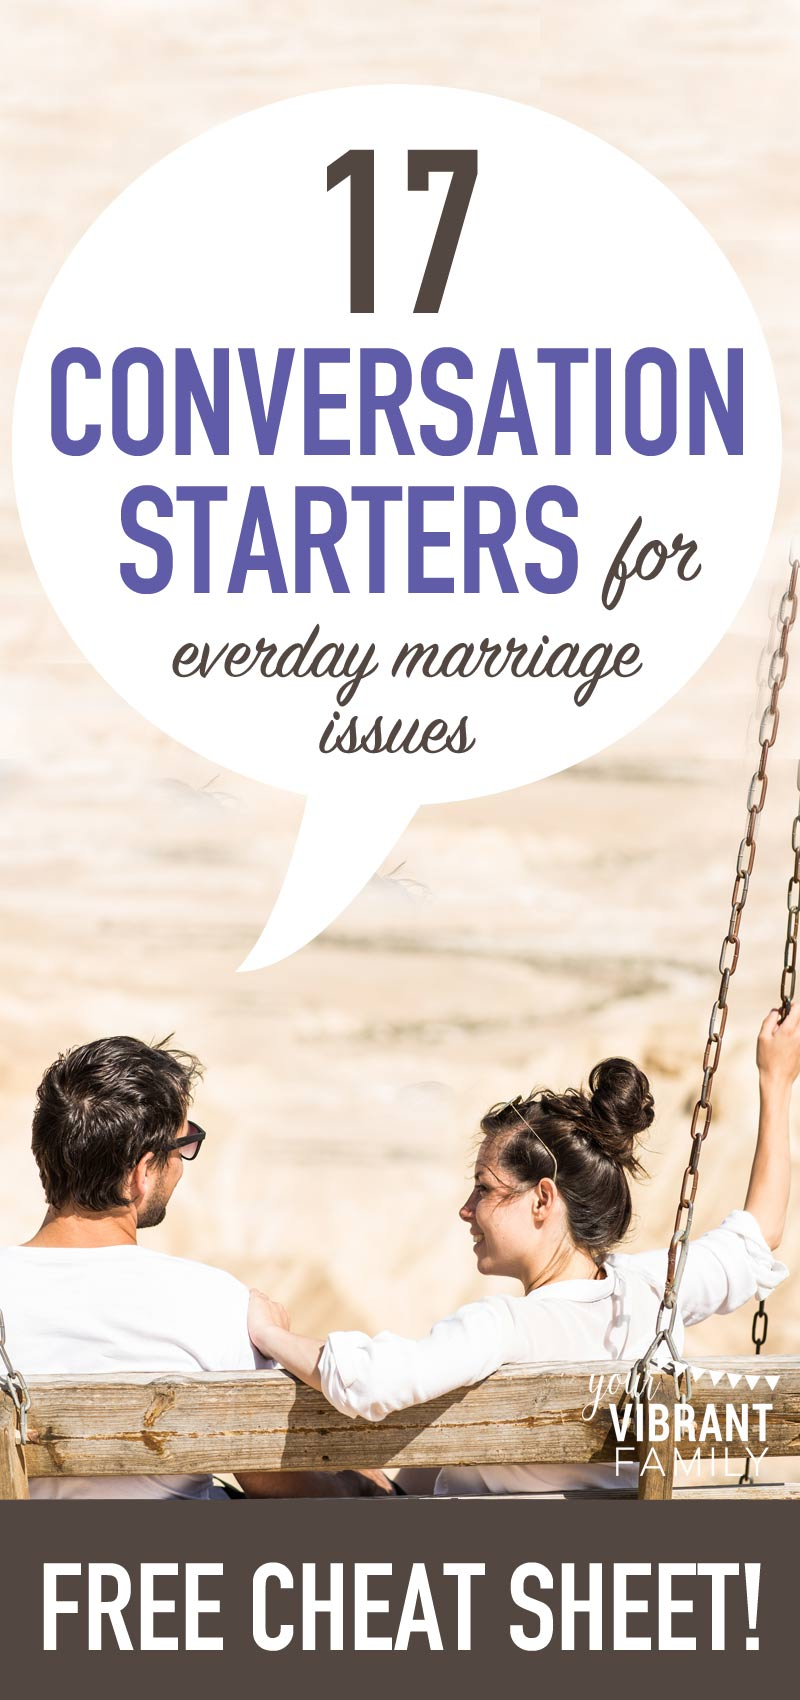 conversation starters for couples | conversation starters married couples | good conversation starters | marriage conversation starters | marriage conversations